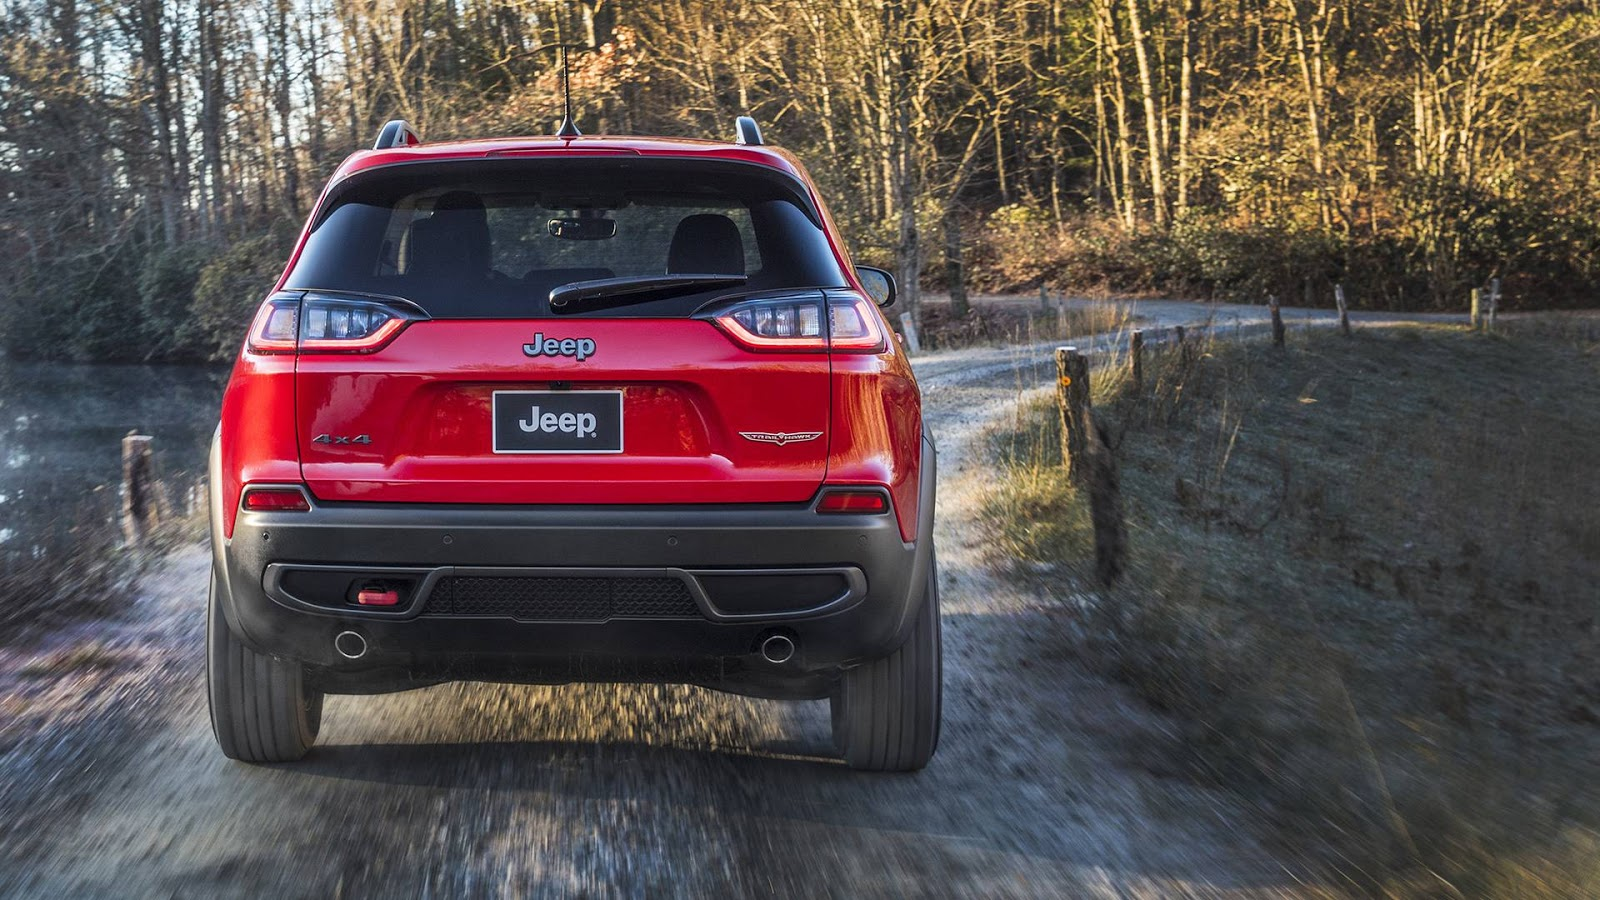 2019 Jeep Cherokee Premieres In Detroit With New Looks And ...